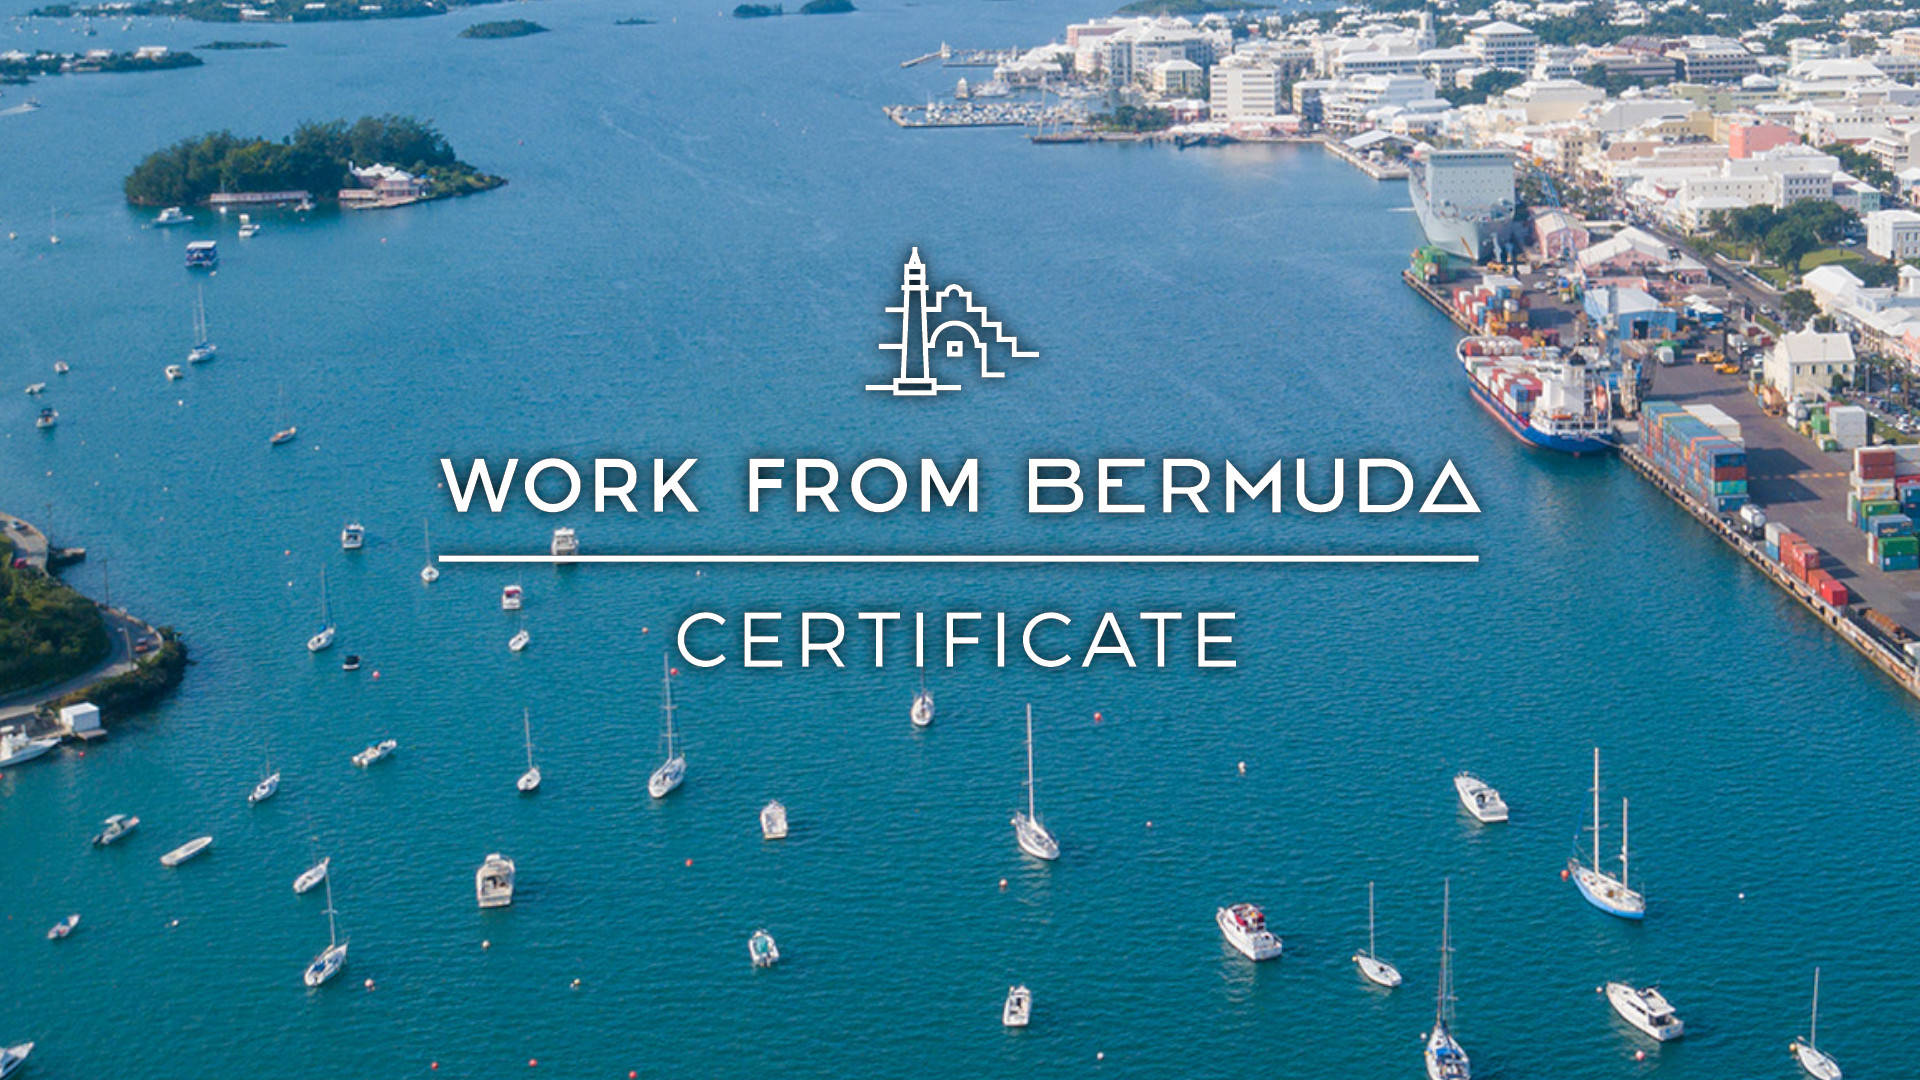 Work from Bermuda Certificate for Remote Workers